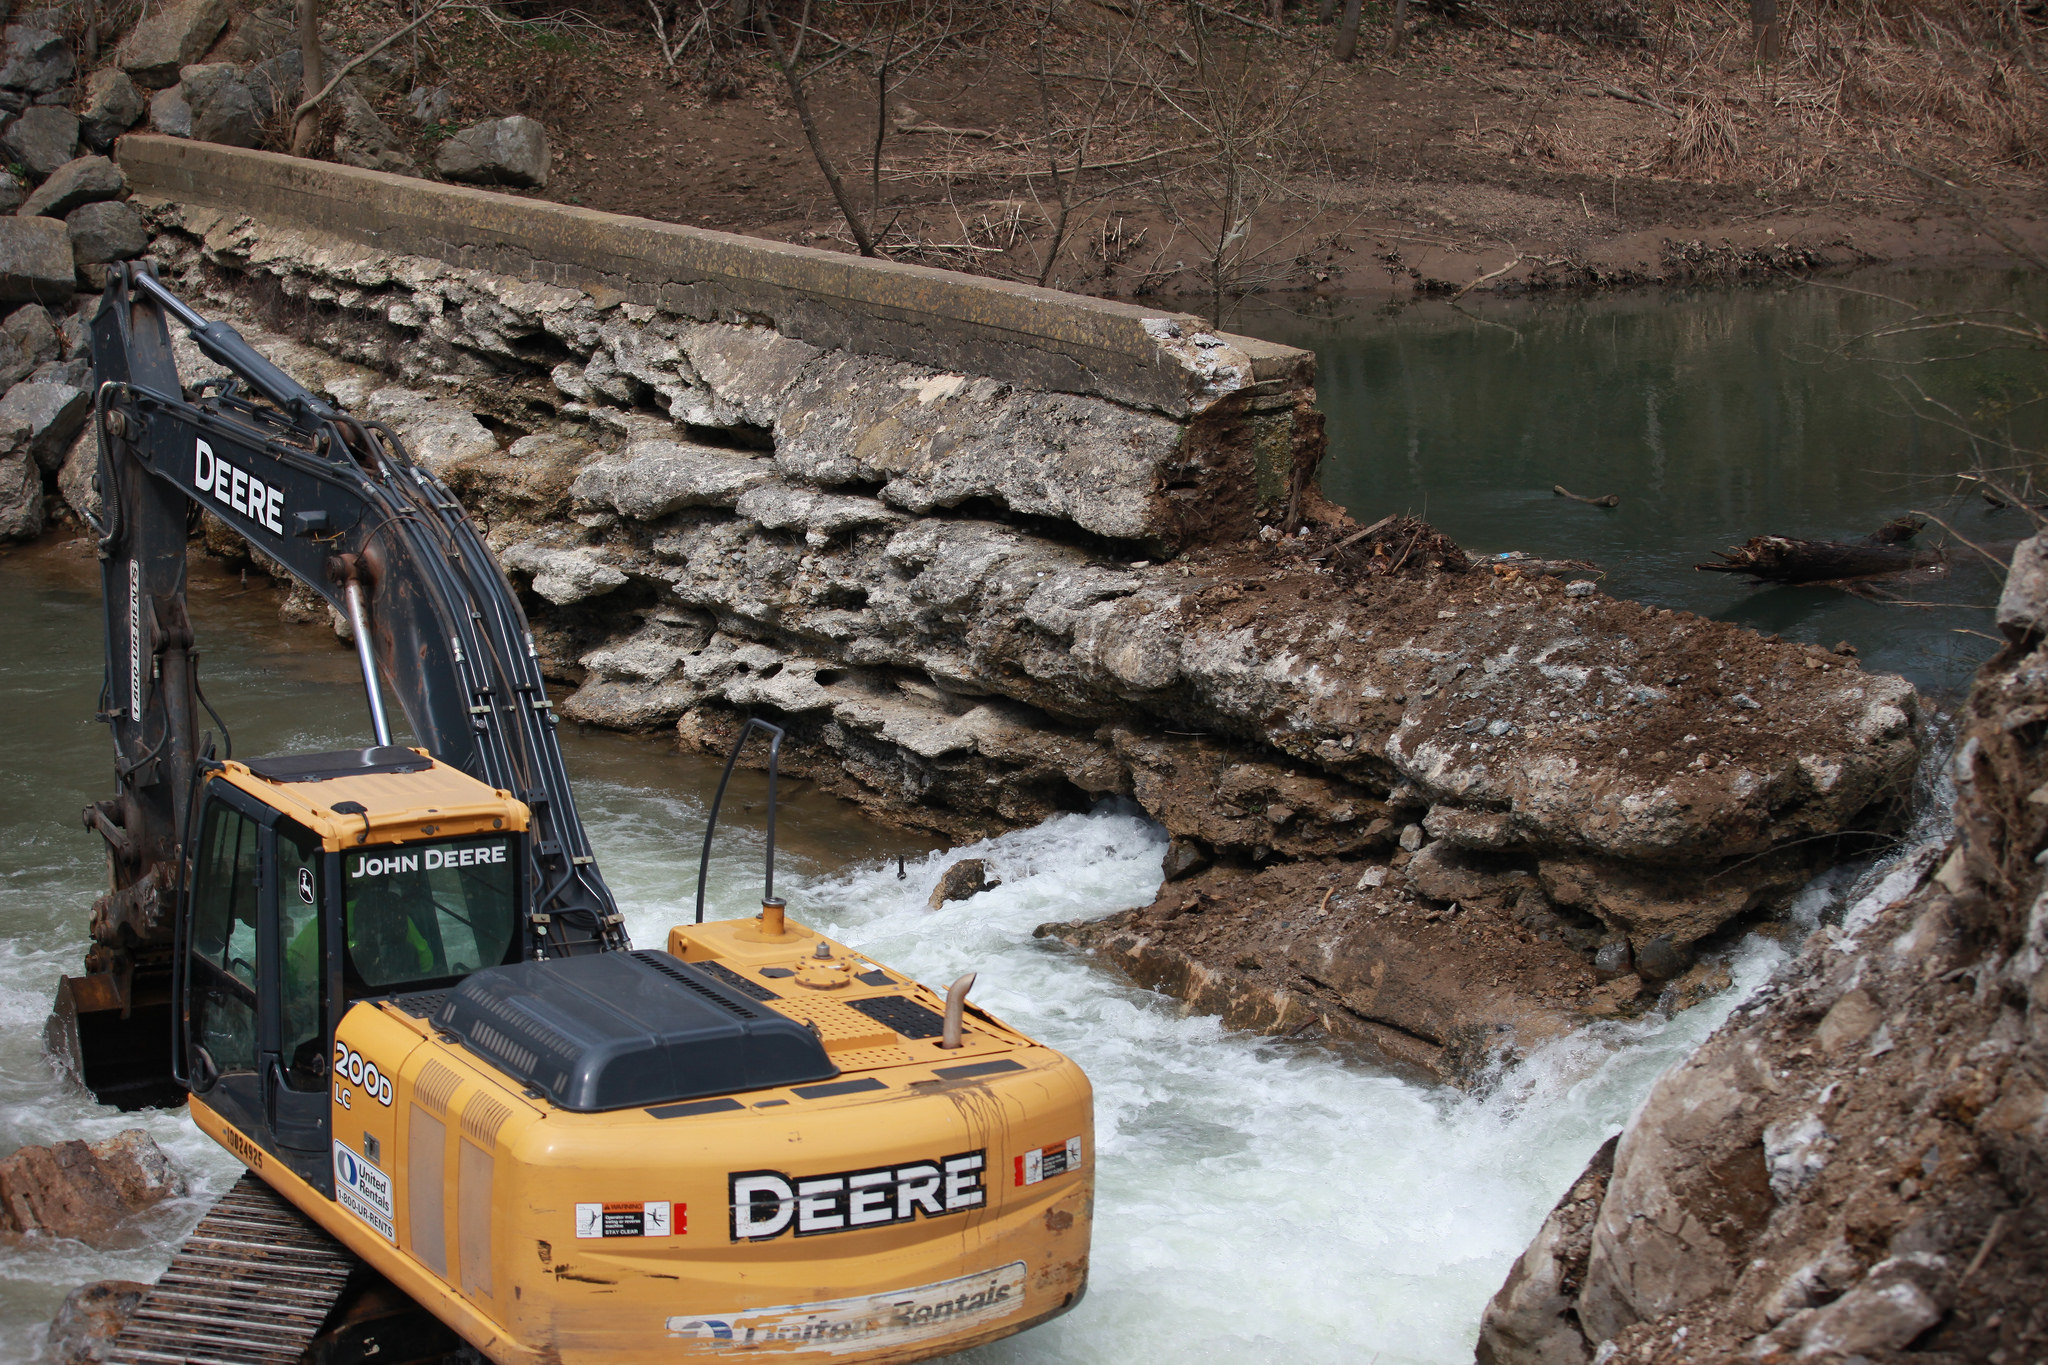 The excavator pictured next to the dam. As you can see, the dam had already been breached. Credit: Tom Barnes / USFWS